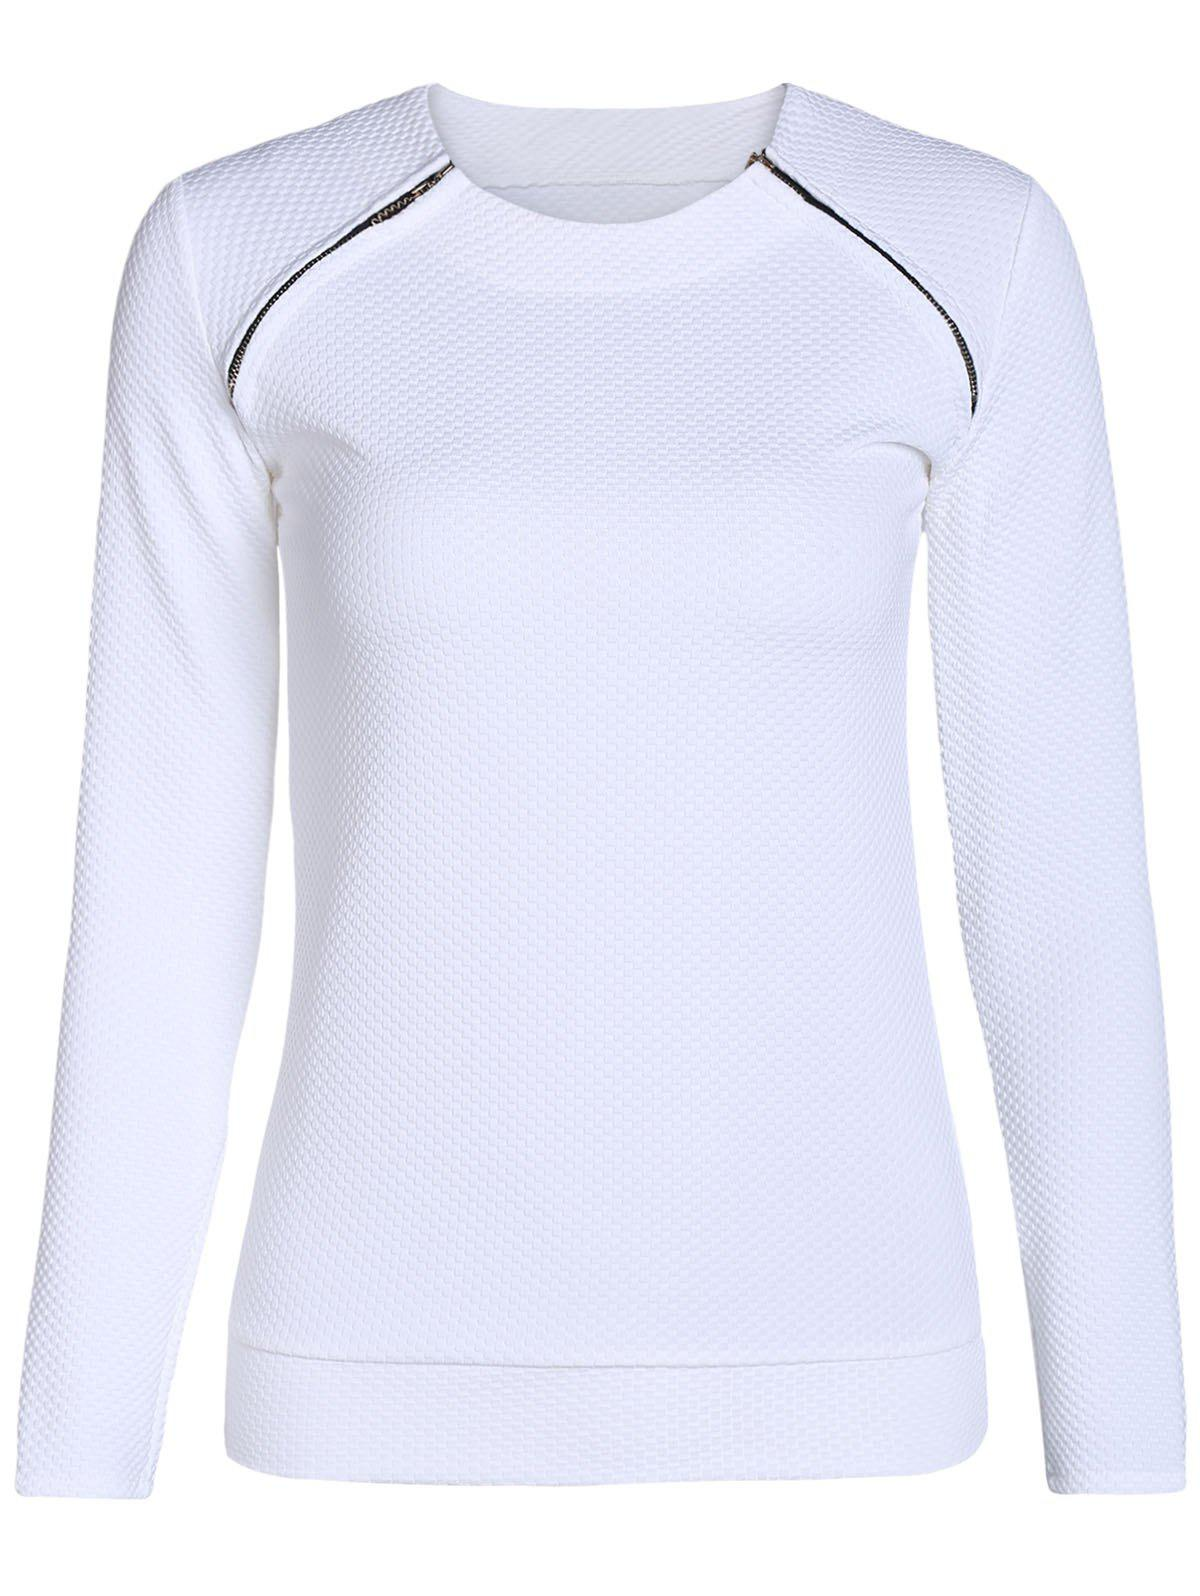 Stylish Long Sleeve Scoop Neck Zipper Design Women's Sweatshirt - WHITE S